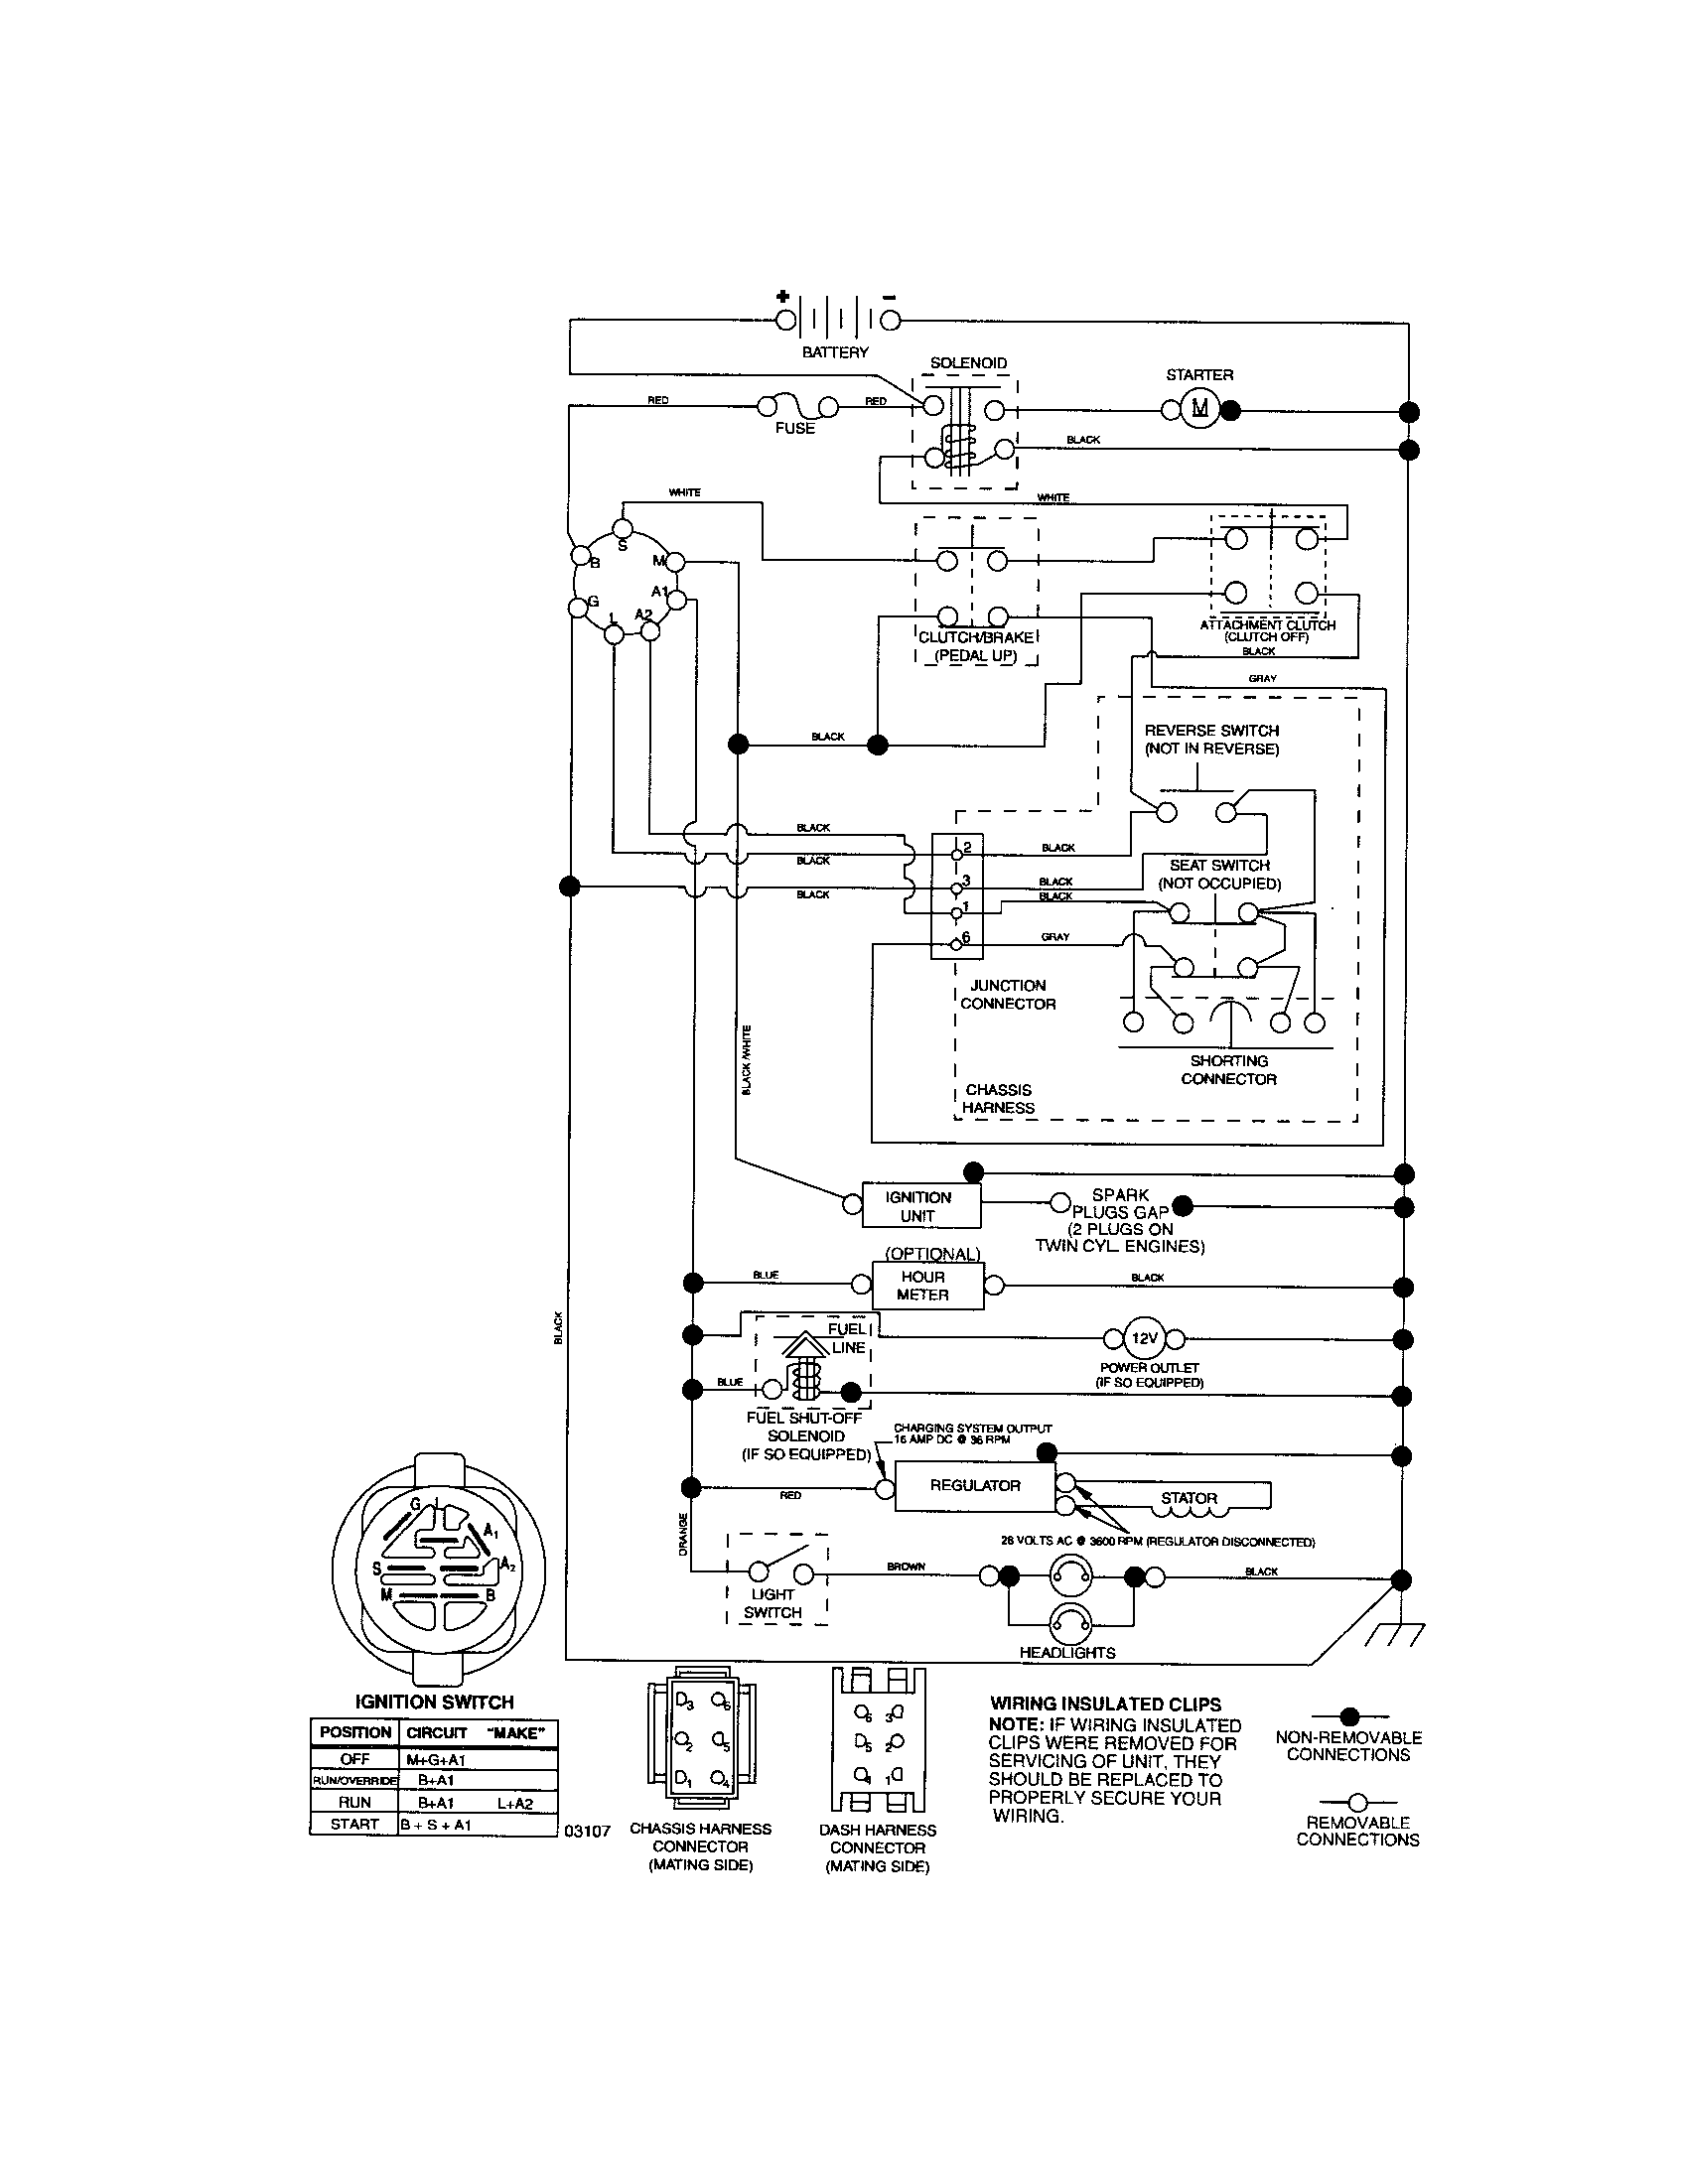 small resolution of dgs 6500 pto switch wiring diagram wiring diagrams scematic toggle switch wiring diagram pto rocker switch wiring diagram